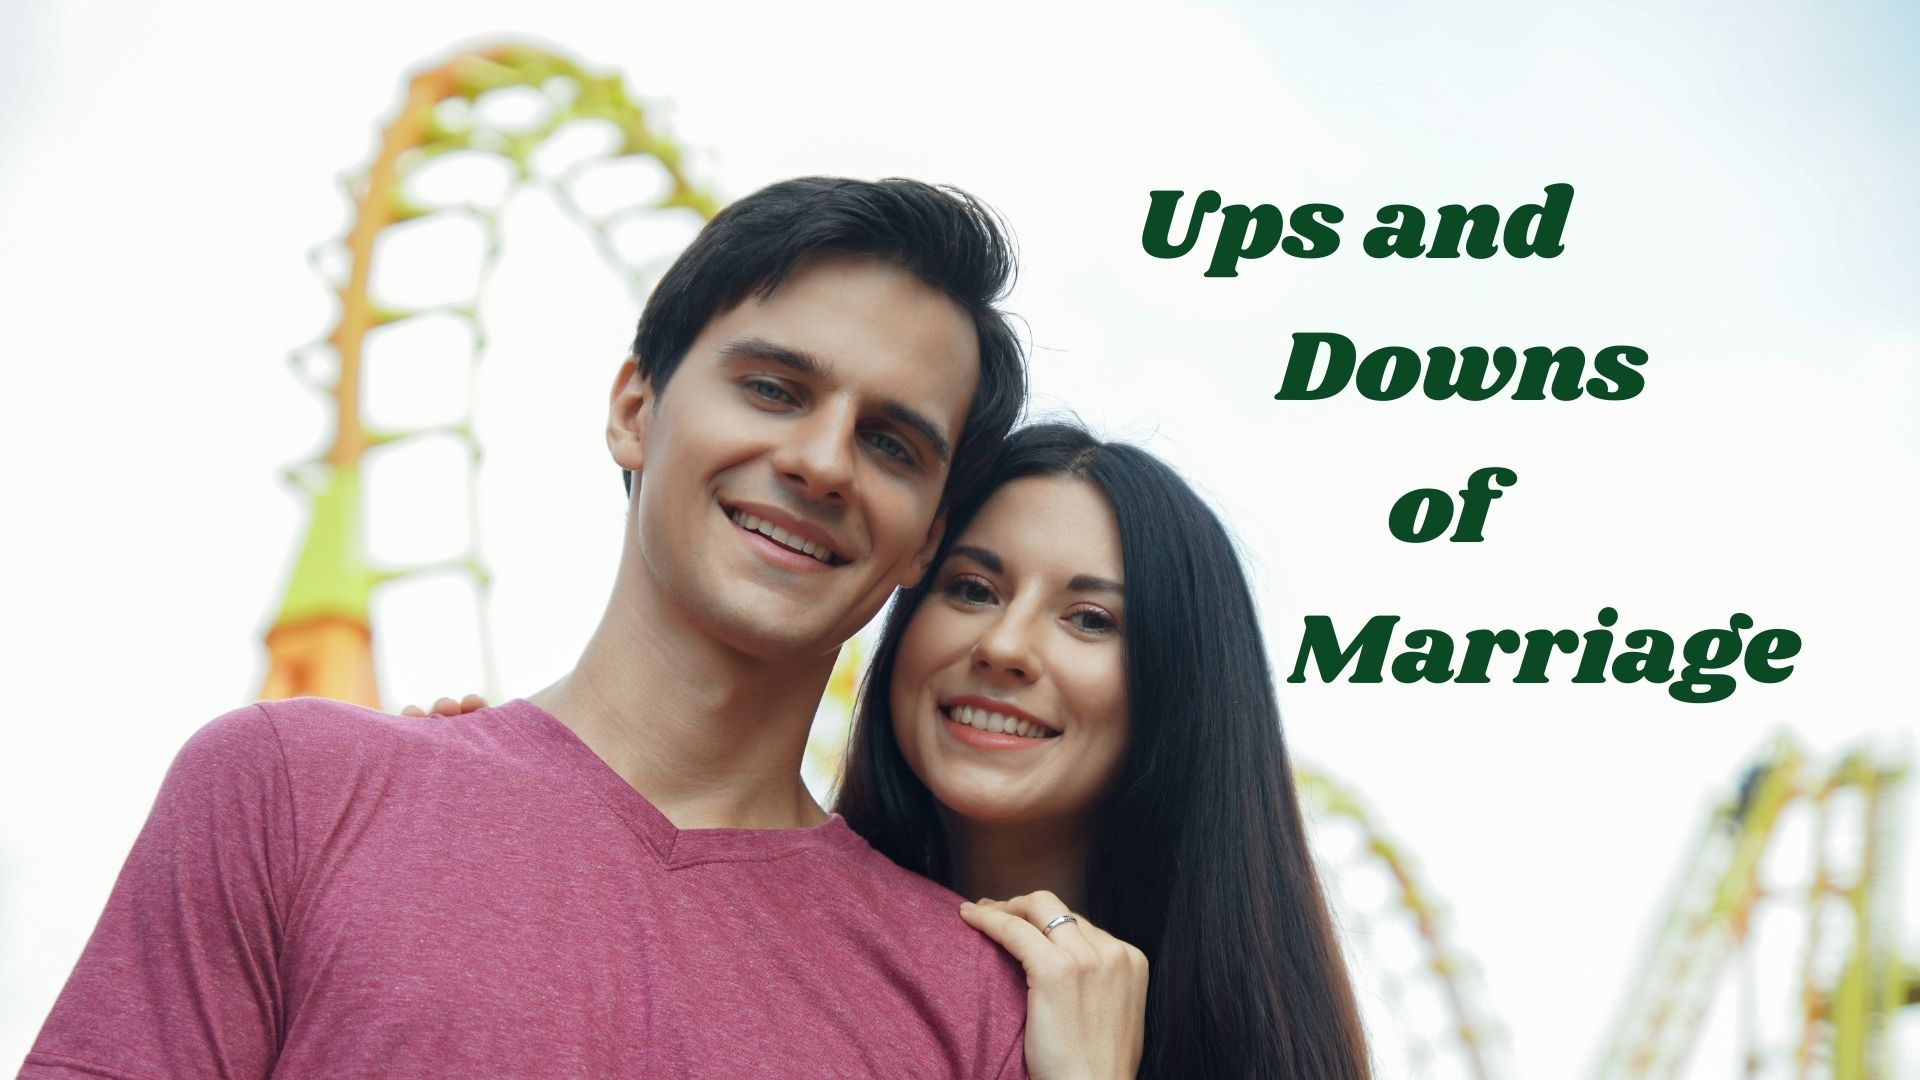 Ups and Downs of Marriage - Adobe Stock